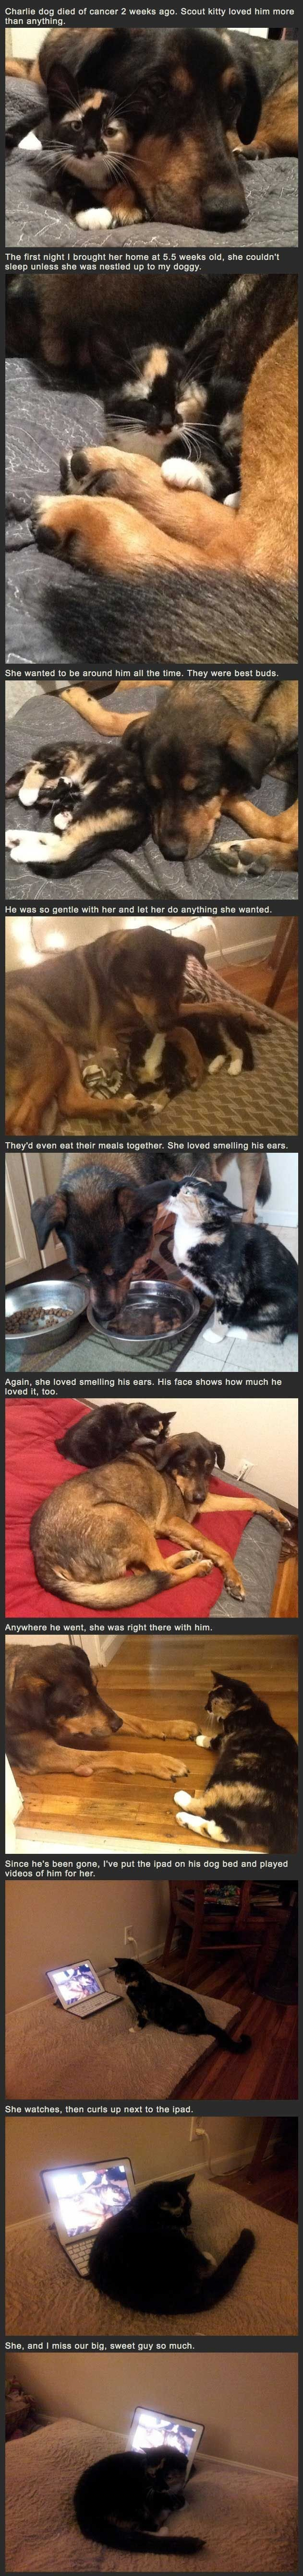 Never forgotten. . Charlie dog died of cancer 2 weeks ago. Scout kitty loved him more than anything. The first night I brought her home at 5. 5 weeks old, she c